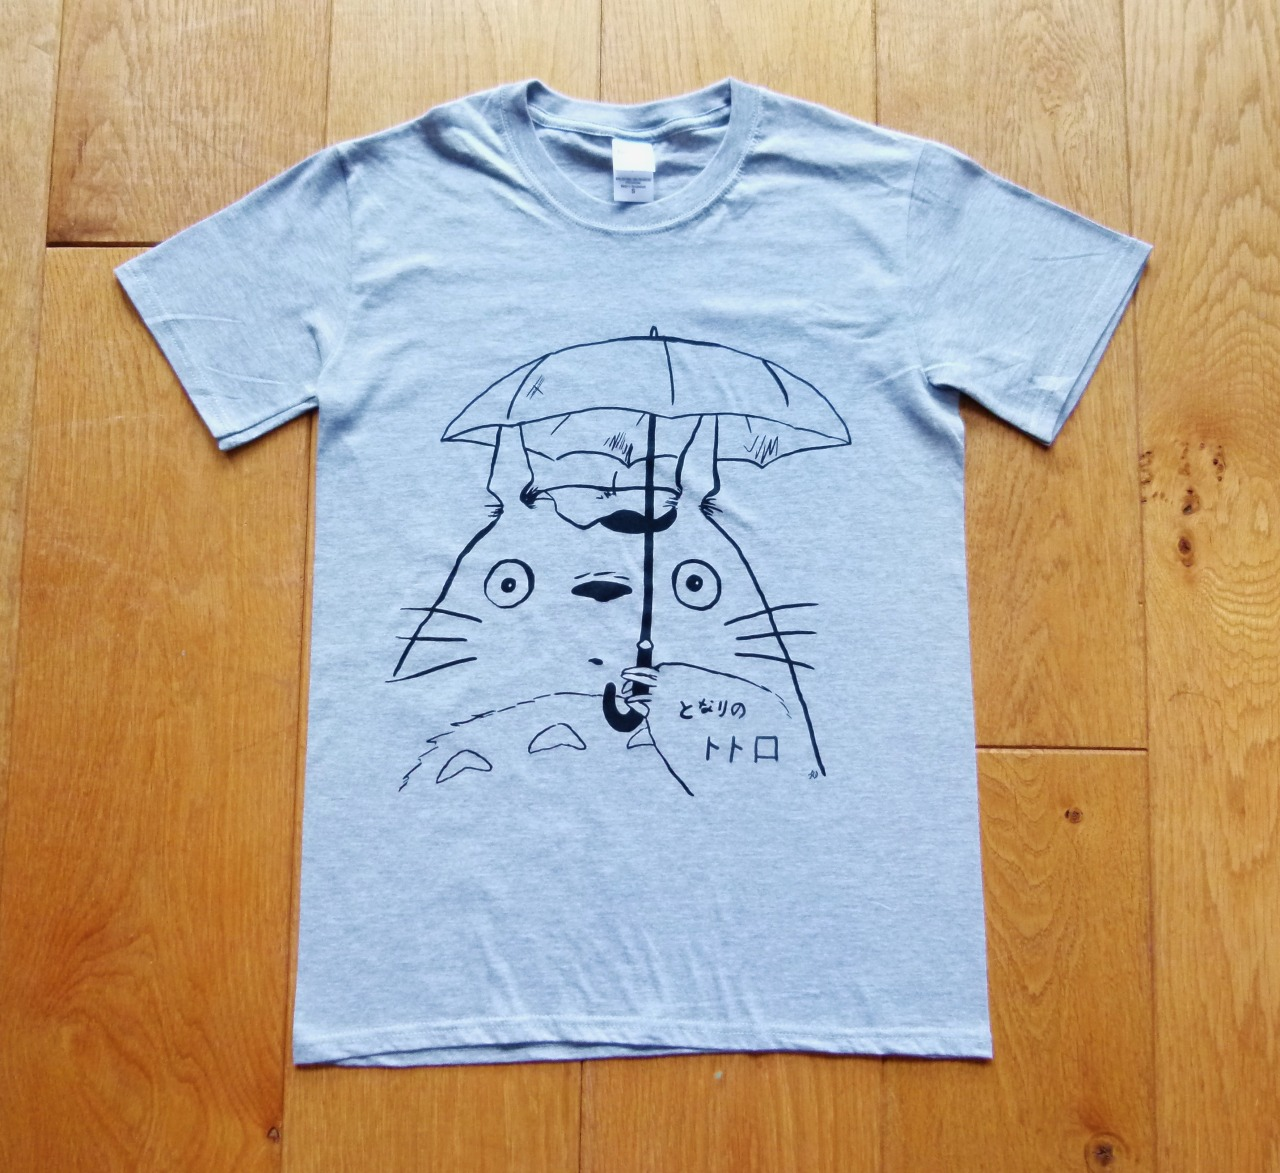 My Neighbour Totoro T-shirts are now ready to purchase on eBay!  First 10 available, more to come soon. :3 Click here to check them out!